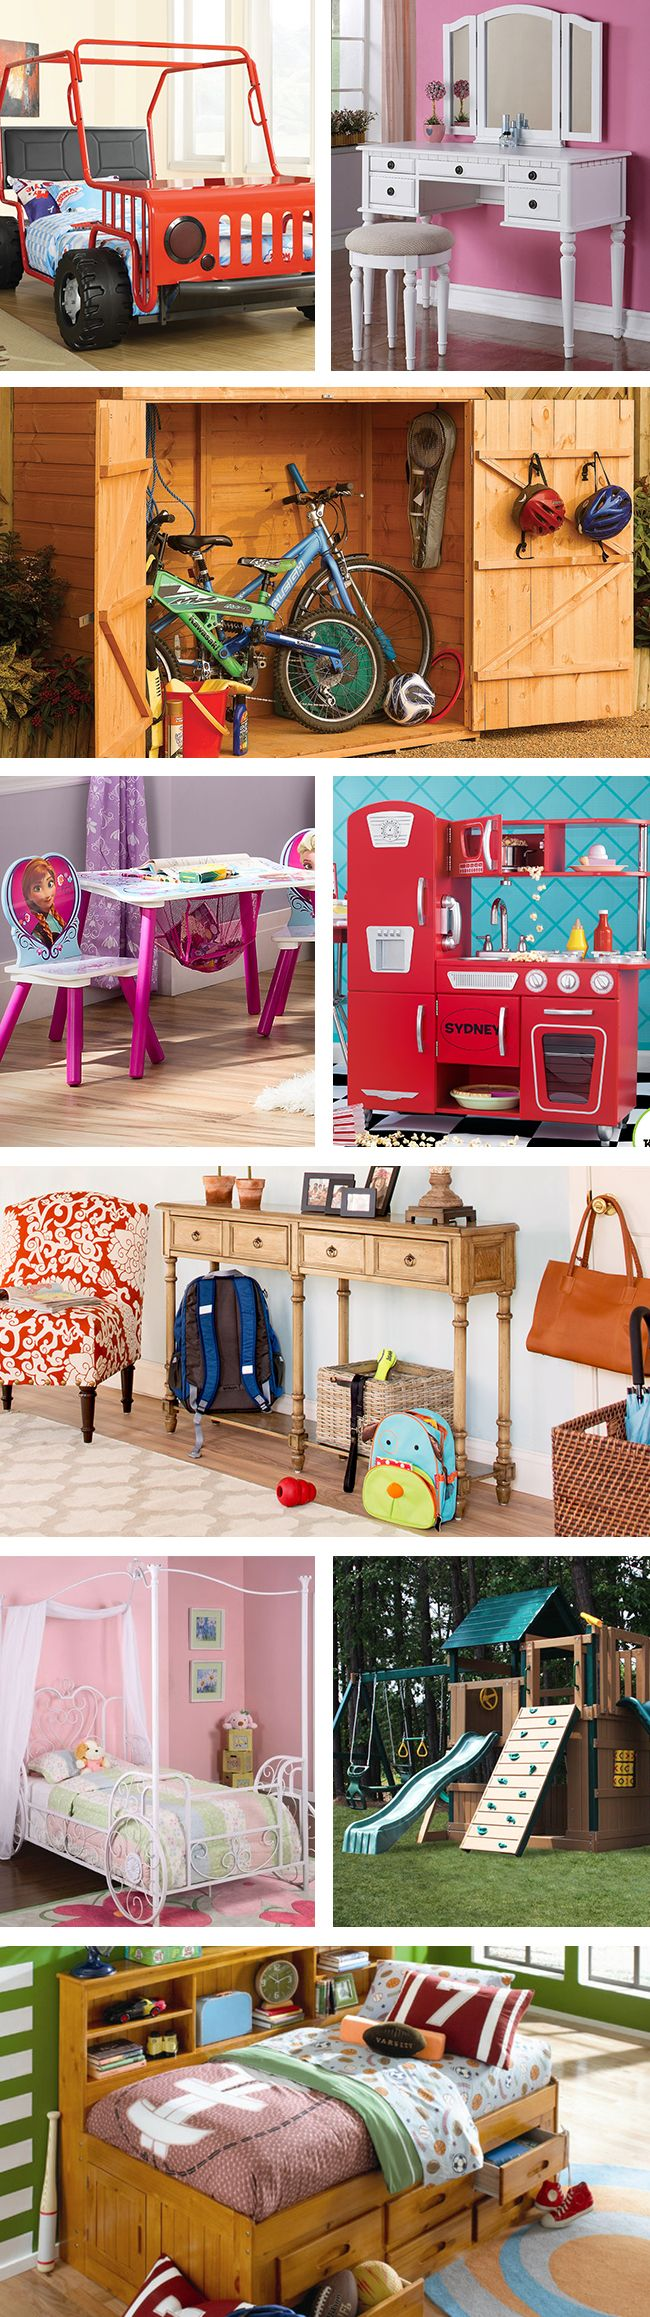 With growing kids, your home needs some changes as well. From best-selling kids beds to home organization to pretend playsets, we have everything you need to keep the mayhem to a minimum. Visit Wayfair and sign up today to get access to exclusive deals everyday up to 70% off. Free shipping on all orders over $49.